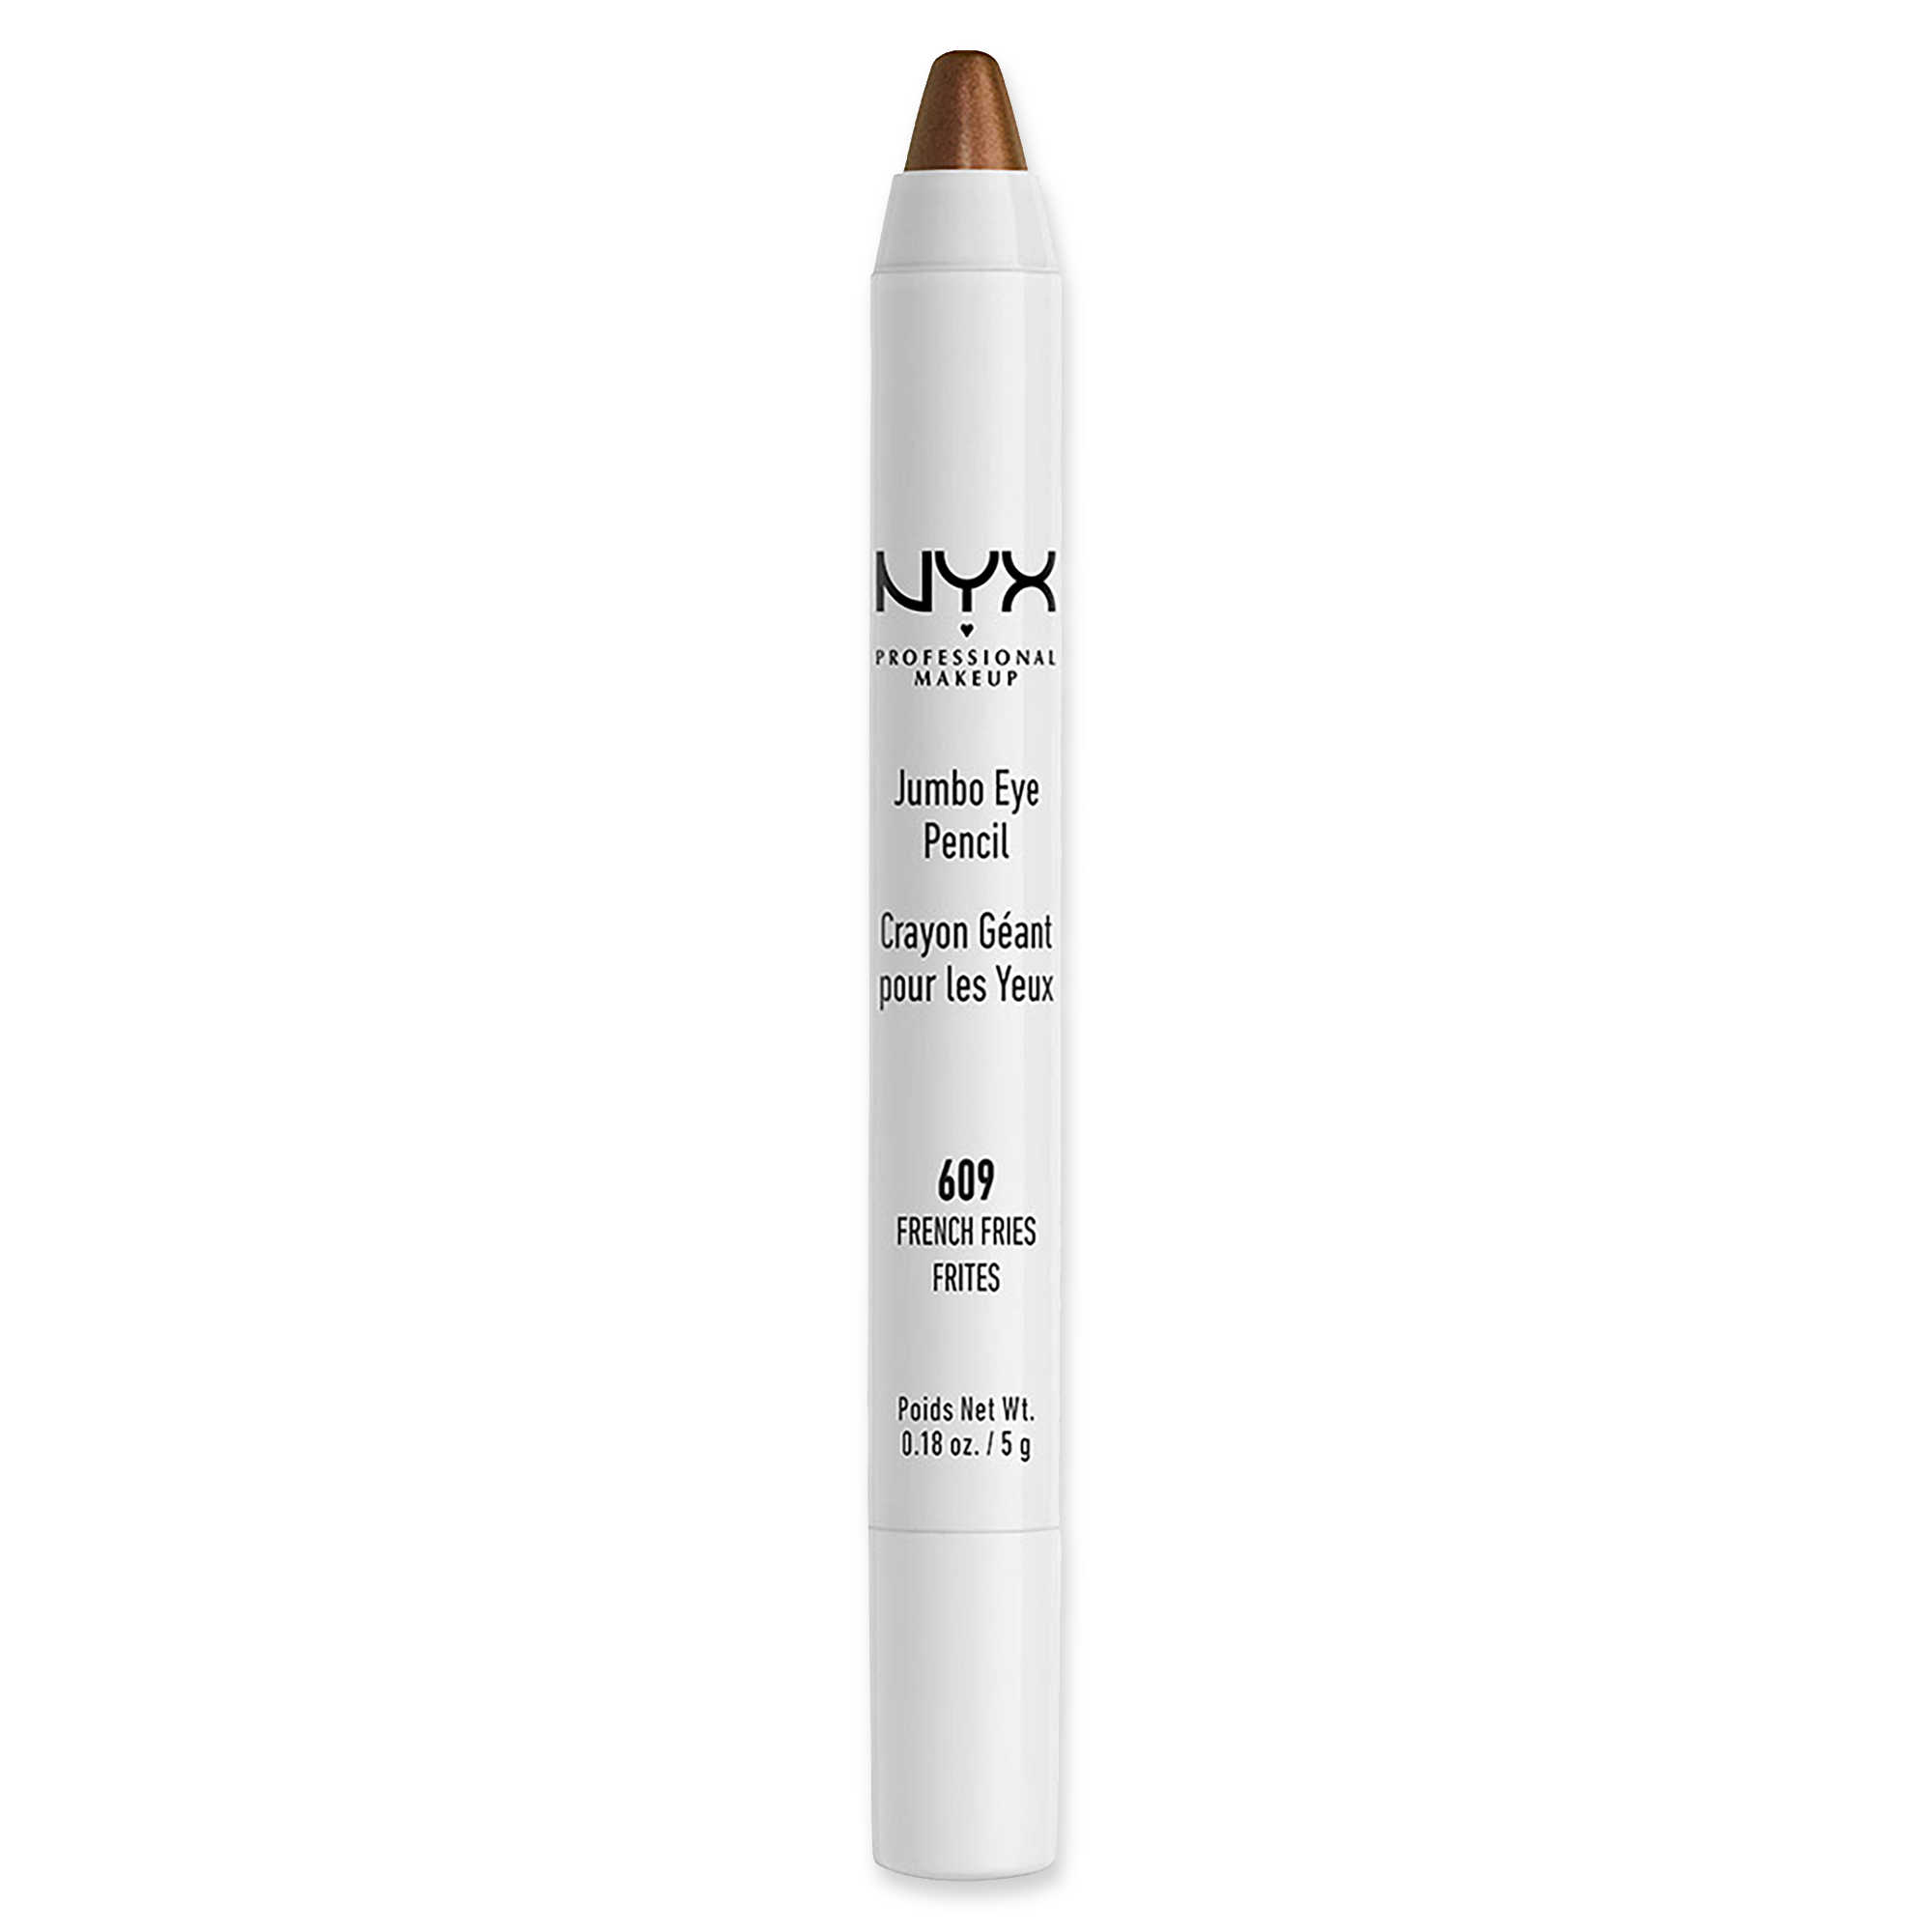 NYX Jumbo Eye Pencil in French Fries - As someone who has little to no skill with makeup, this eye shadow stick has been a lifesaver for nights out, with French Fries giving noticeable but subtle depth to my eyelids.Clocking in at less than $5, it's definitely worth a try.